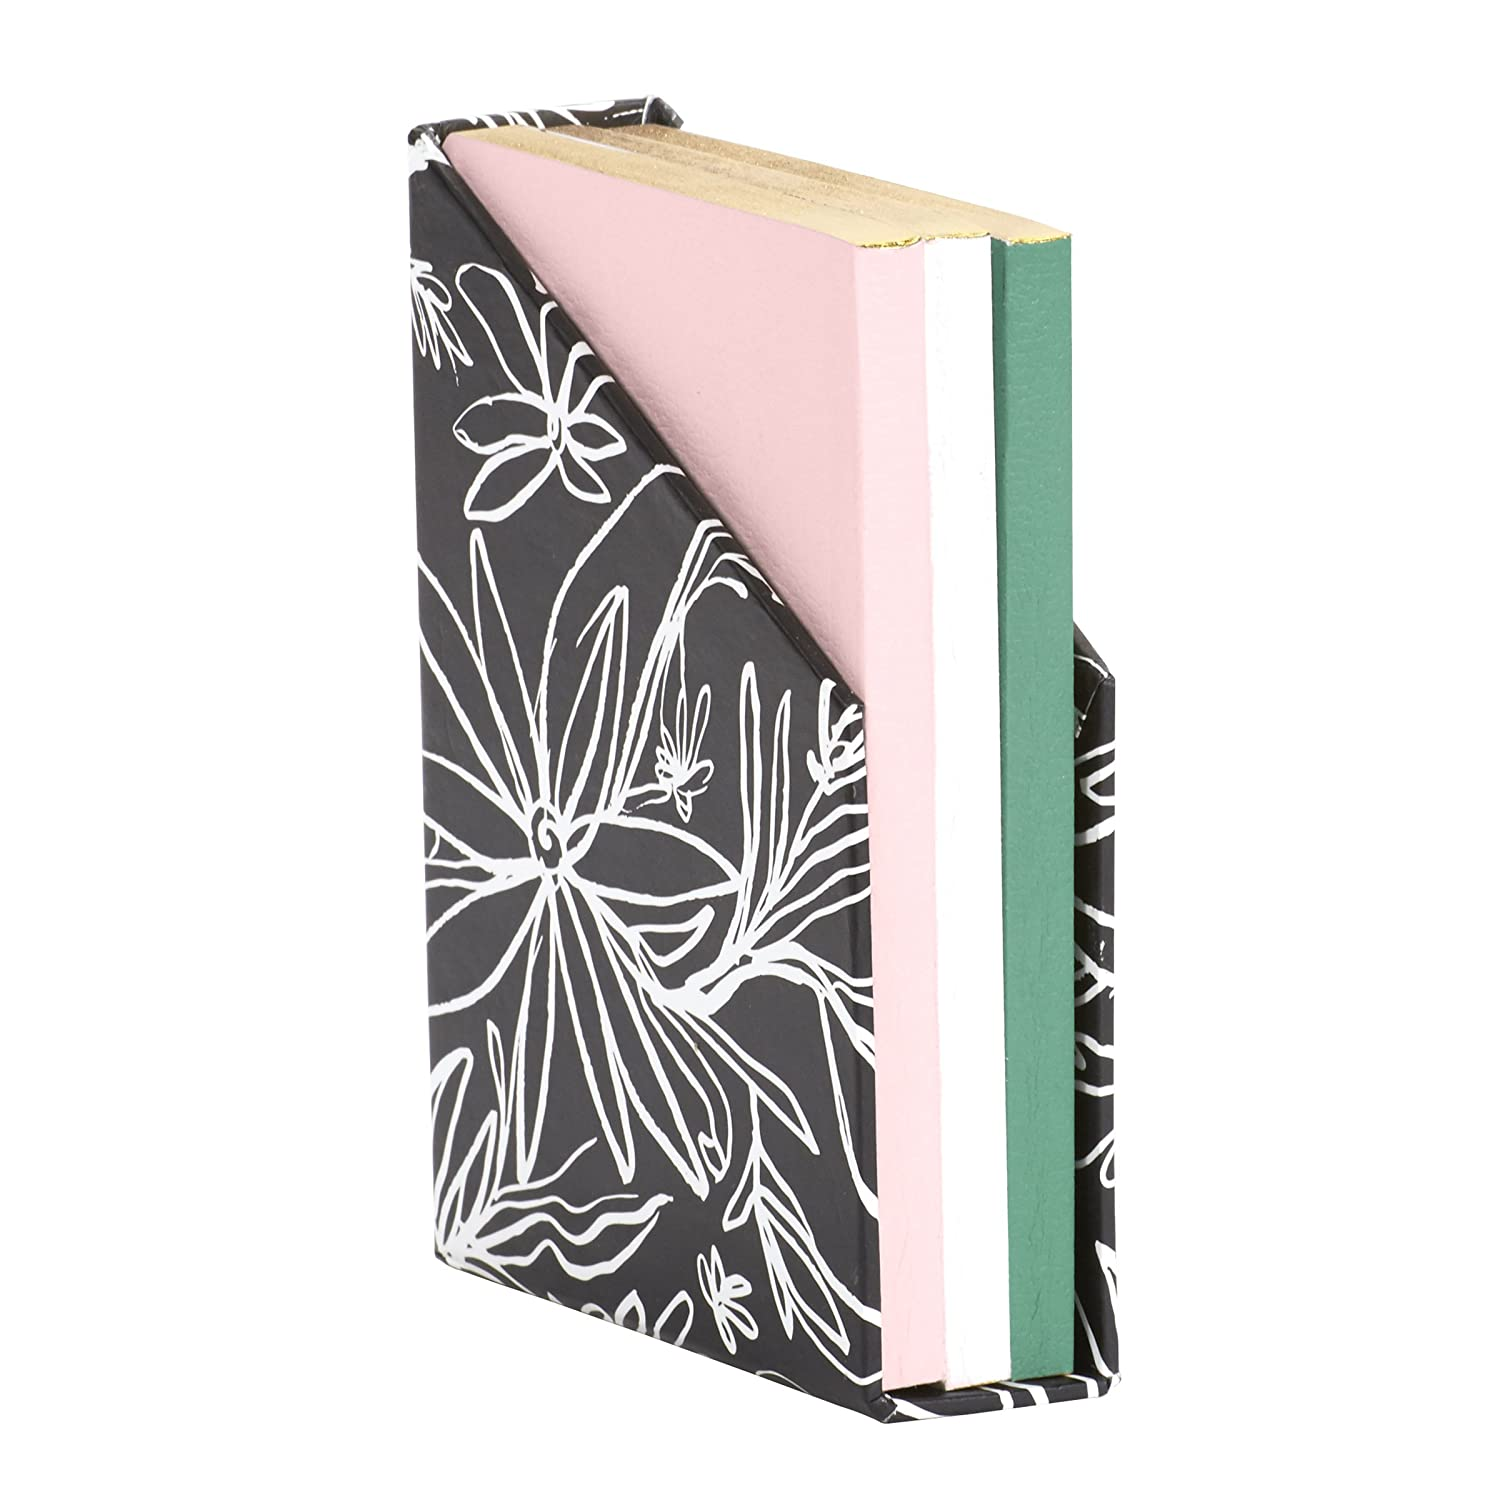 "alt=""Mini flex organic journal set with black and white floral enclosure and pink, white and green journals with black cursive sentiments"""